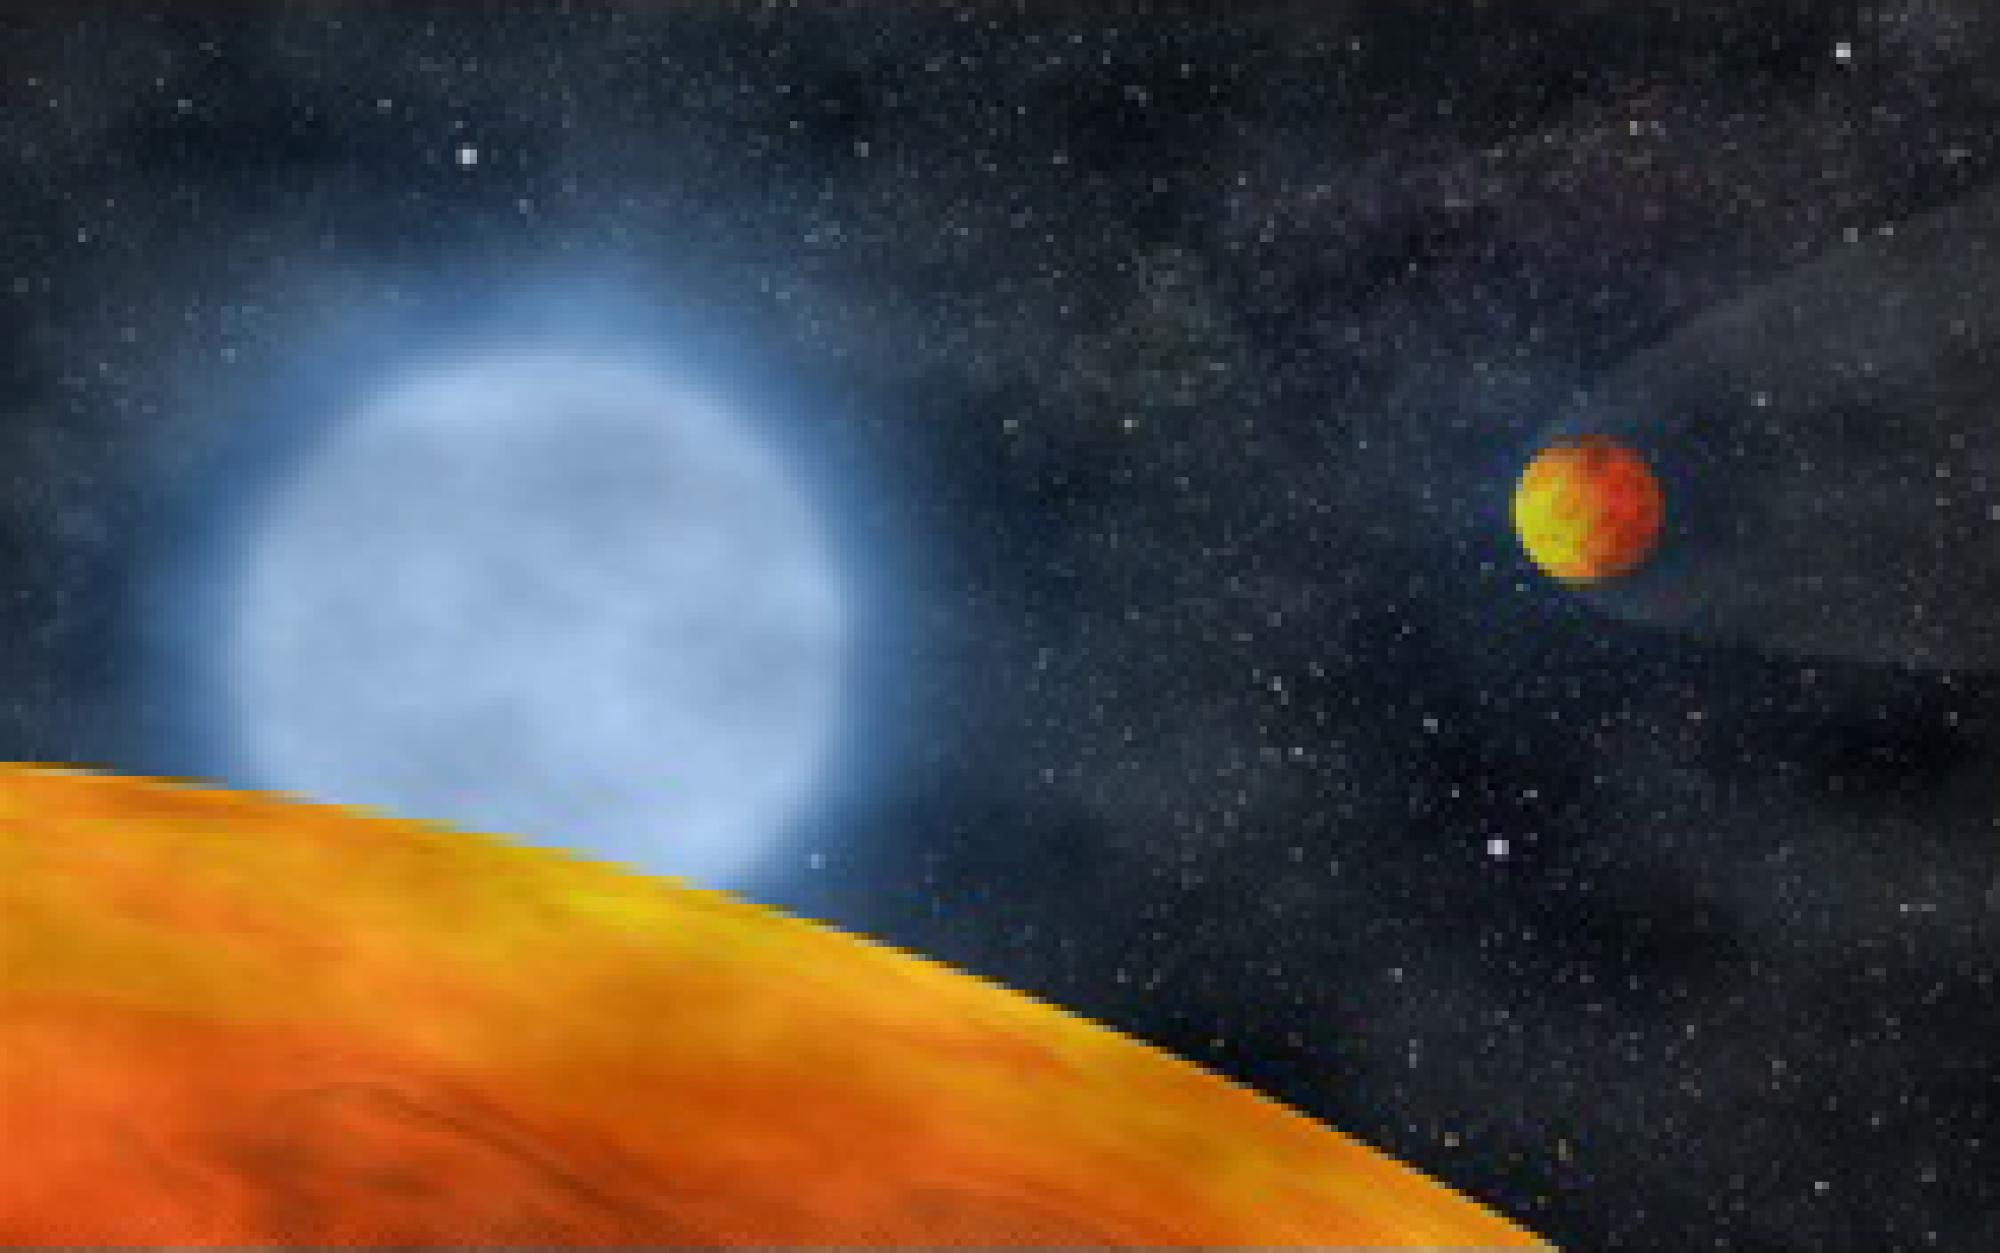 Artist's rendition of two hot Earth-sized planets orbiting a subdwarf B star.